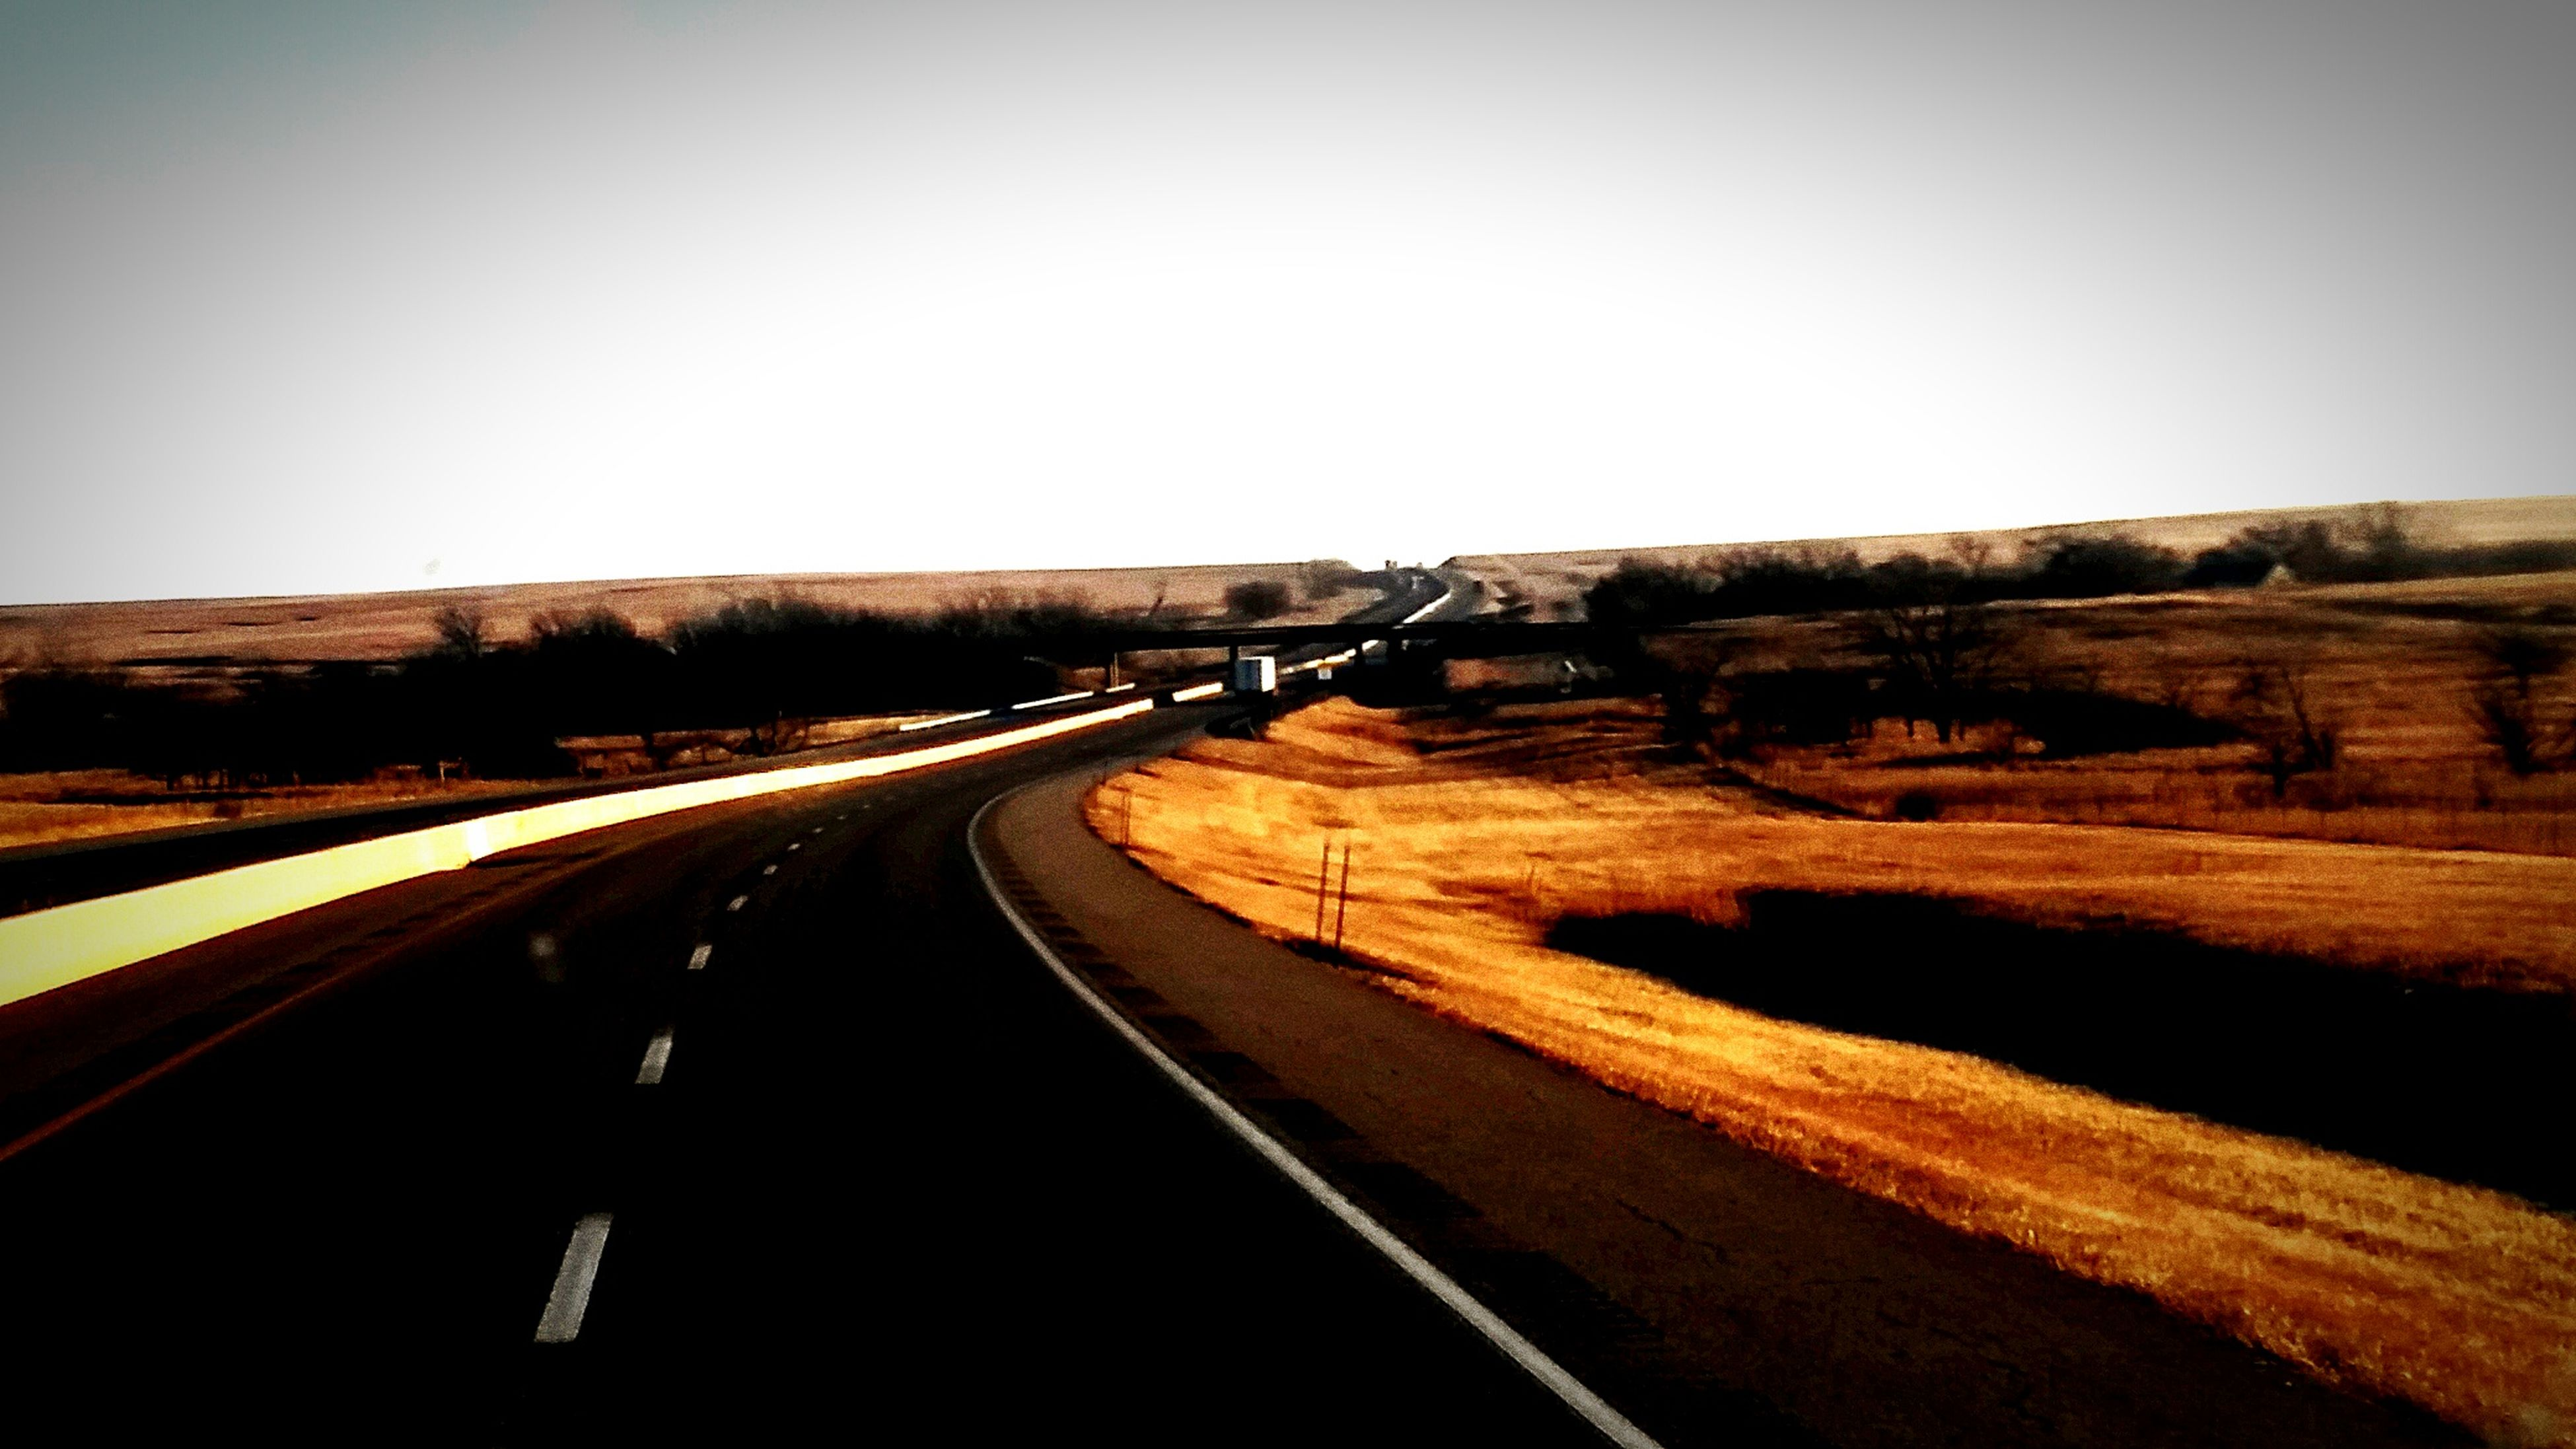 Highways&Freeways Taking Photos Hello World Through My Car Window The Places I've Been Today Check This Out Eye4photography  This Week On Eyeem Farmcountry Truckerlife Truckdriver Truckdriving Enjoying Life Highwayphotography Highway_collection Highway 36 Mo